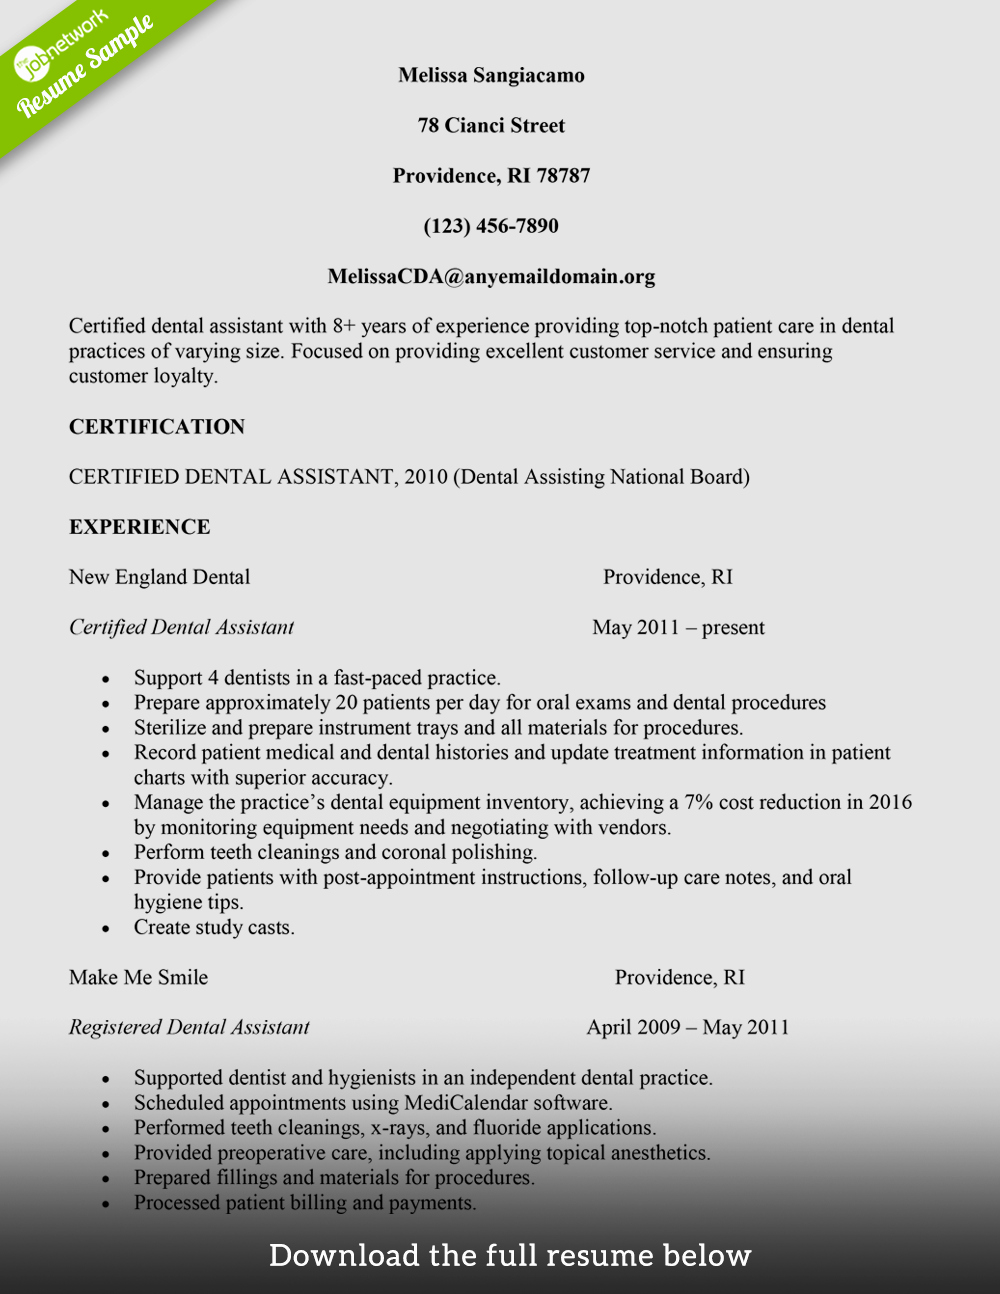 Dental assistant Resumes Template Fresh How to Build A Great Dental assistant Resume Examples